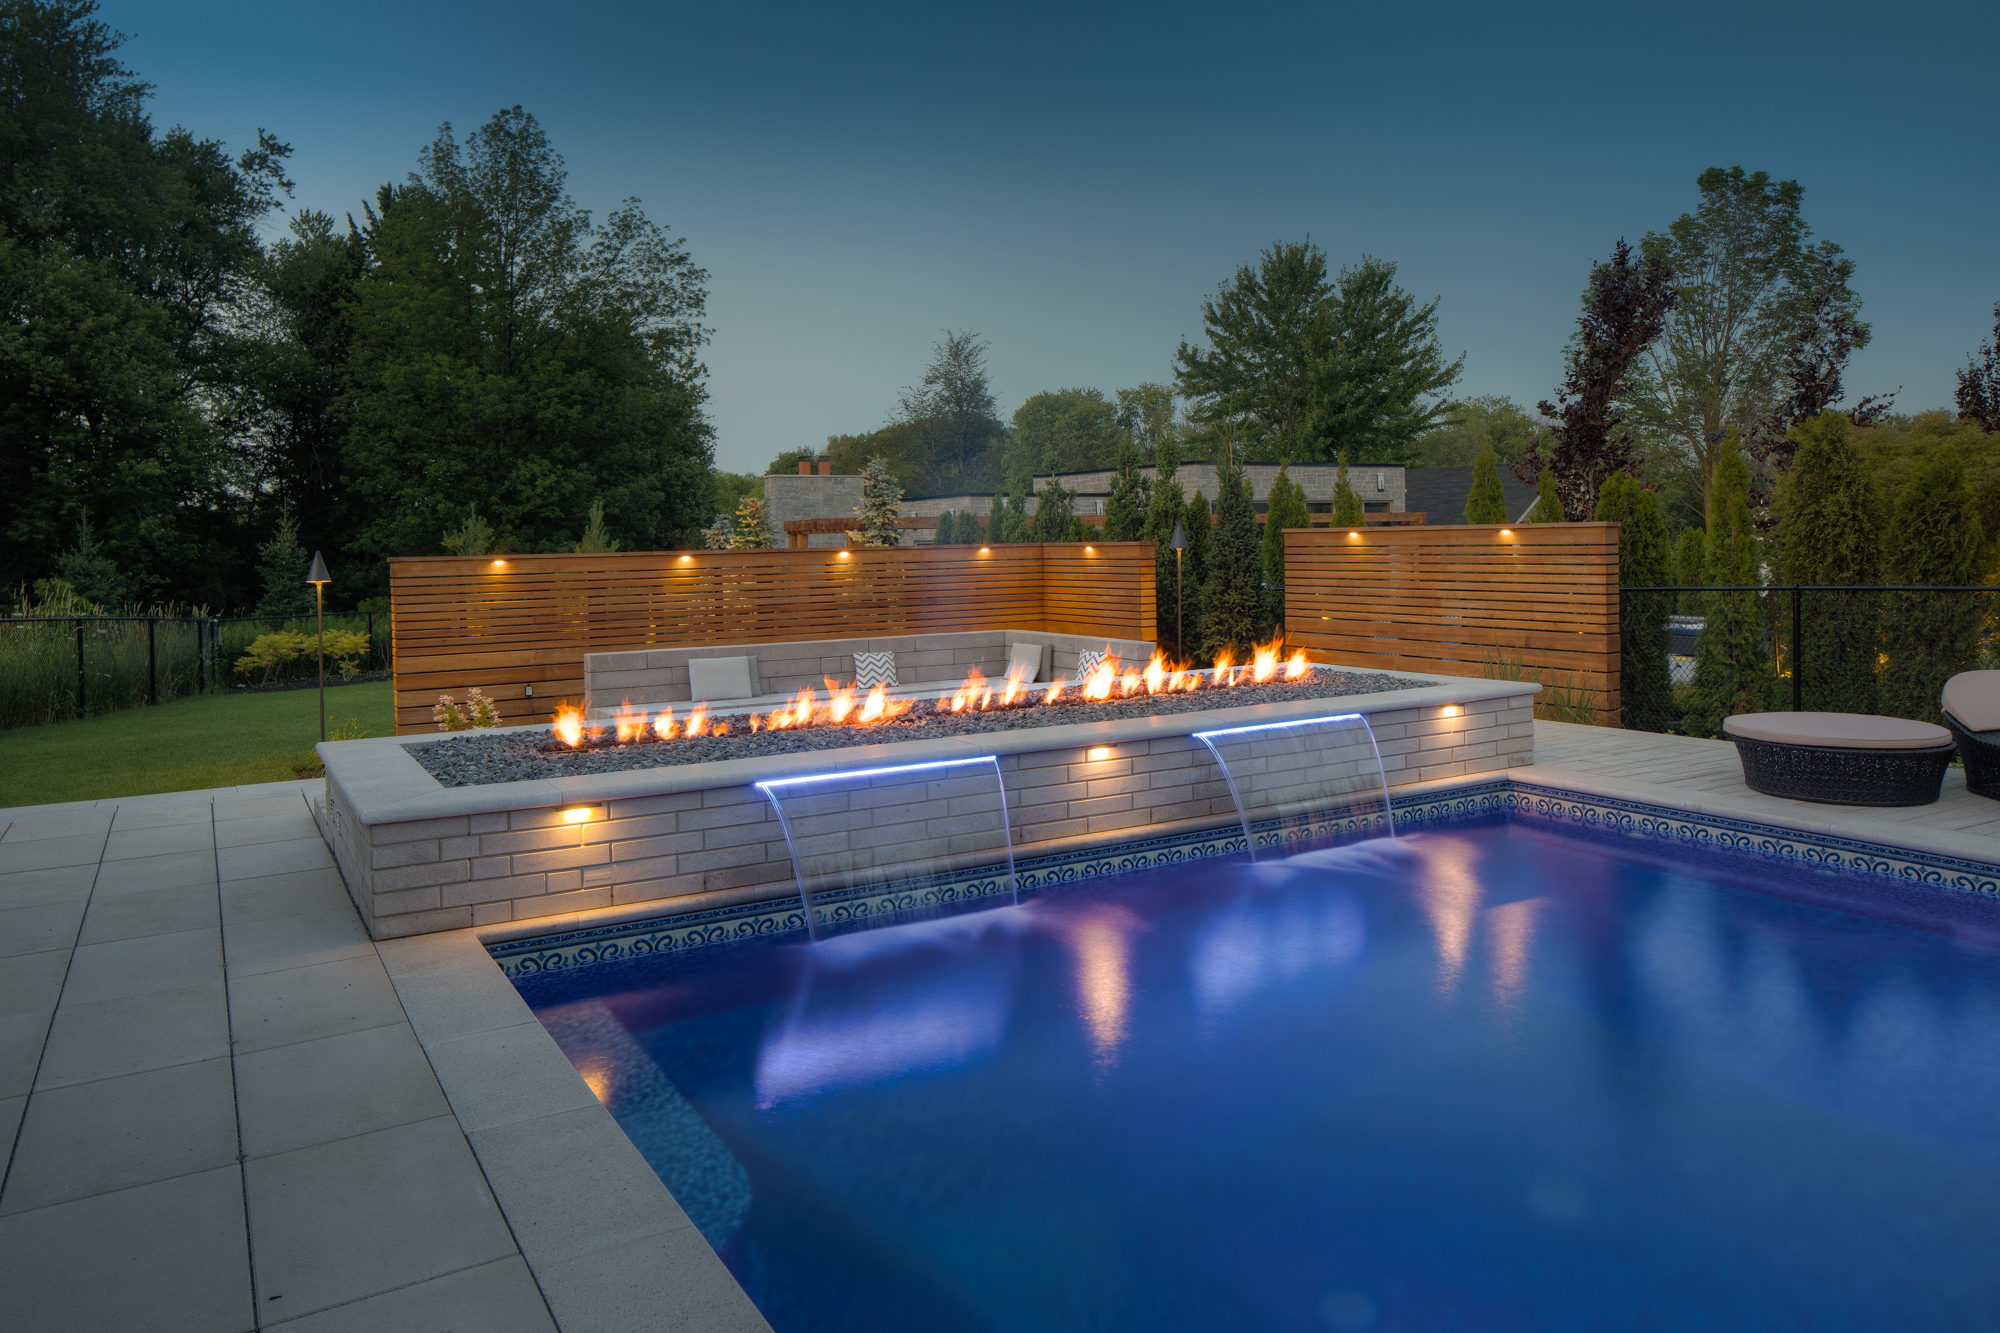 A cascade water features with an outdoor firepit, installed by Swimming Pool Company Pool Craft